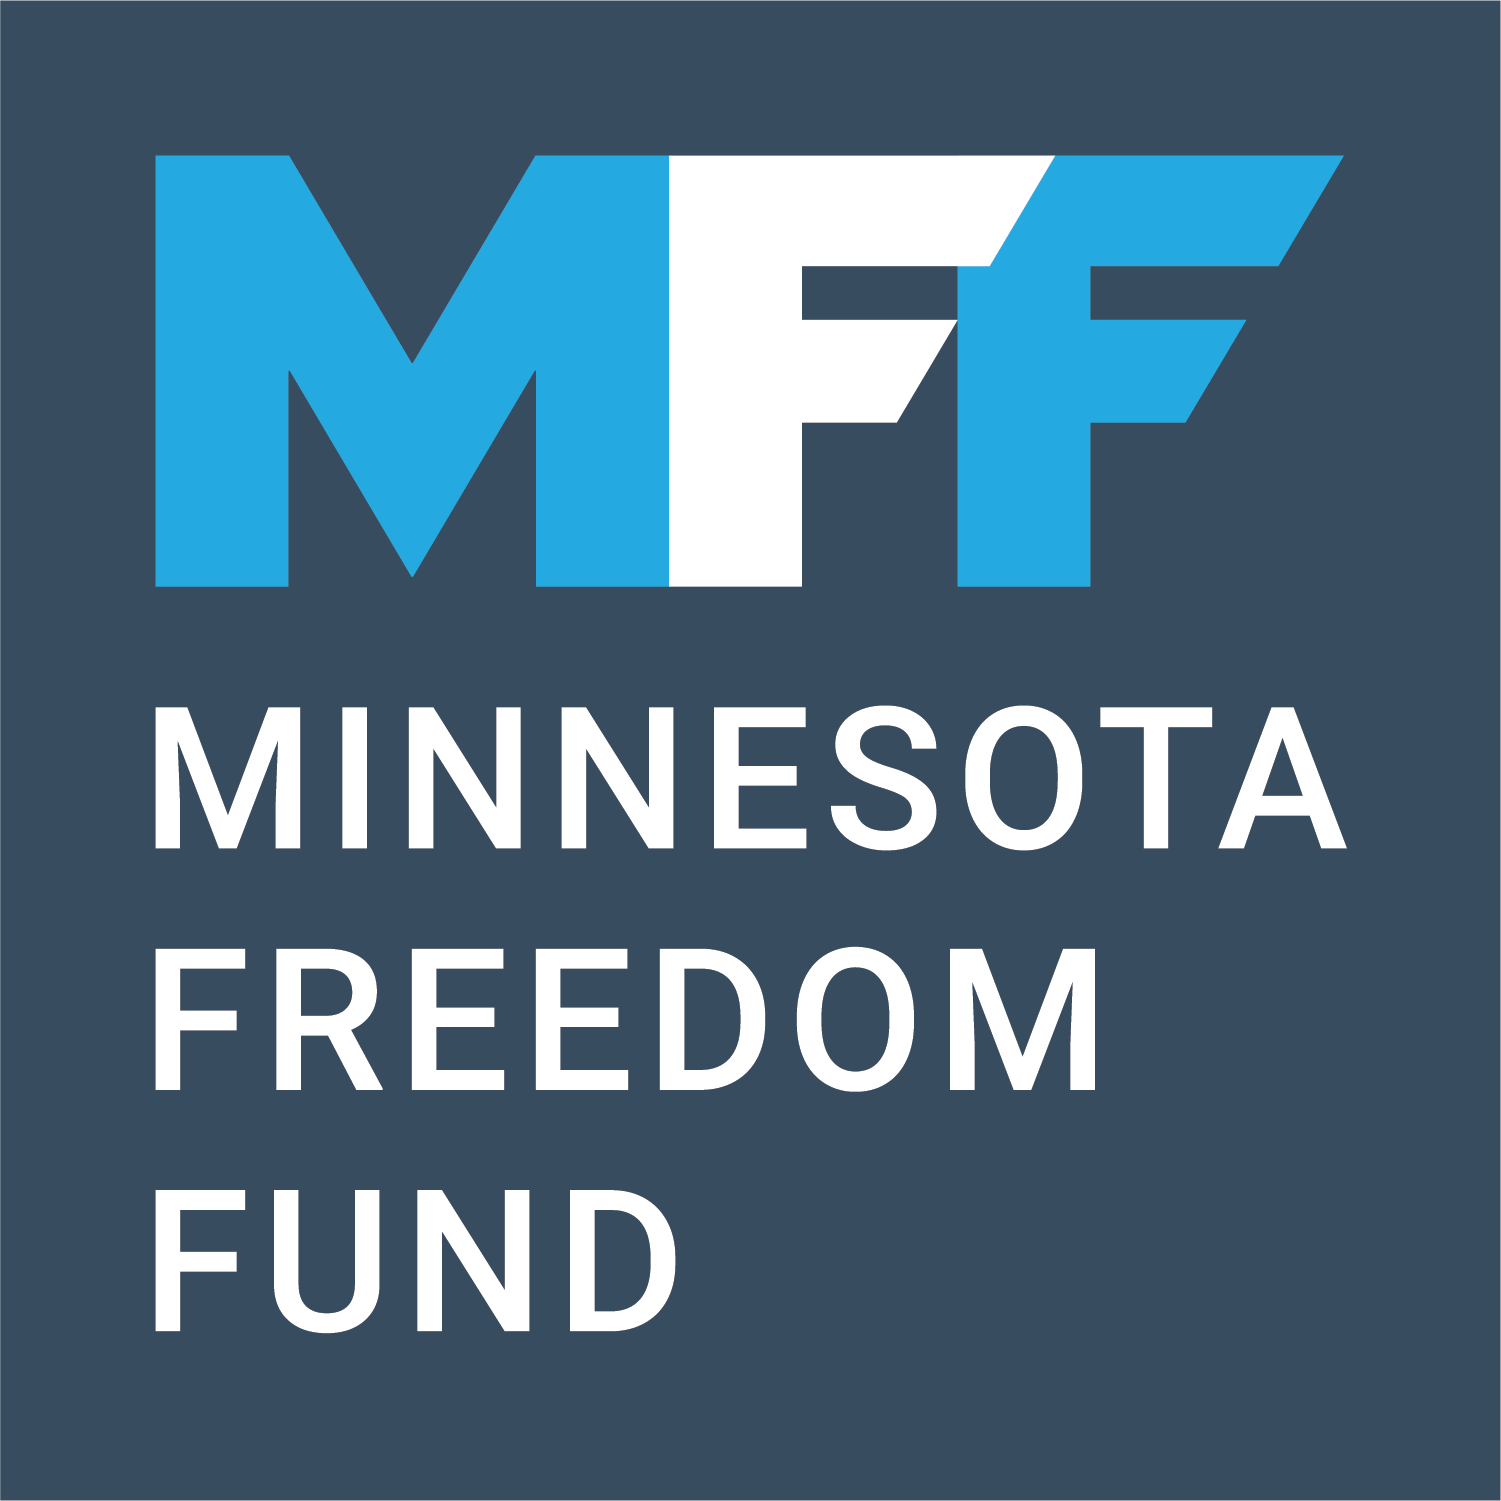 Minnesota Bail Fund Promoted by Kamala Harris Helped Release Alleged Child Rapist and Other Violent Offenders